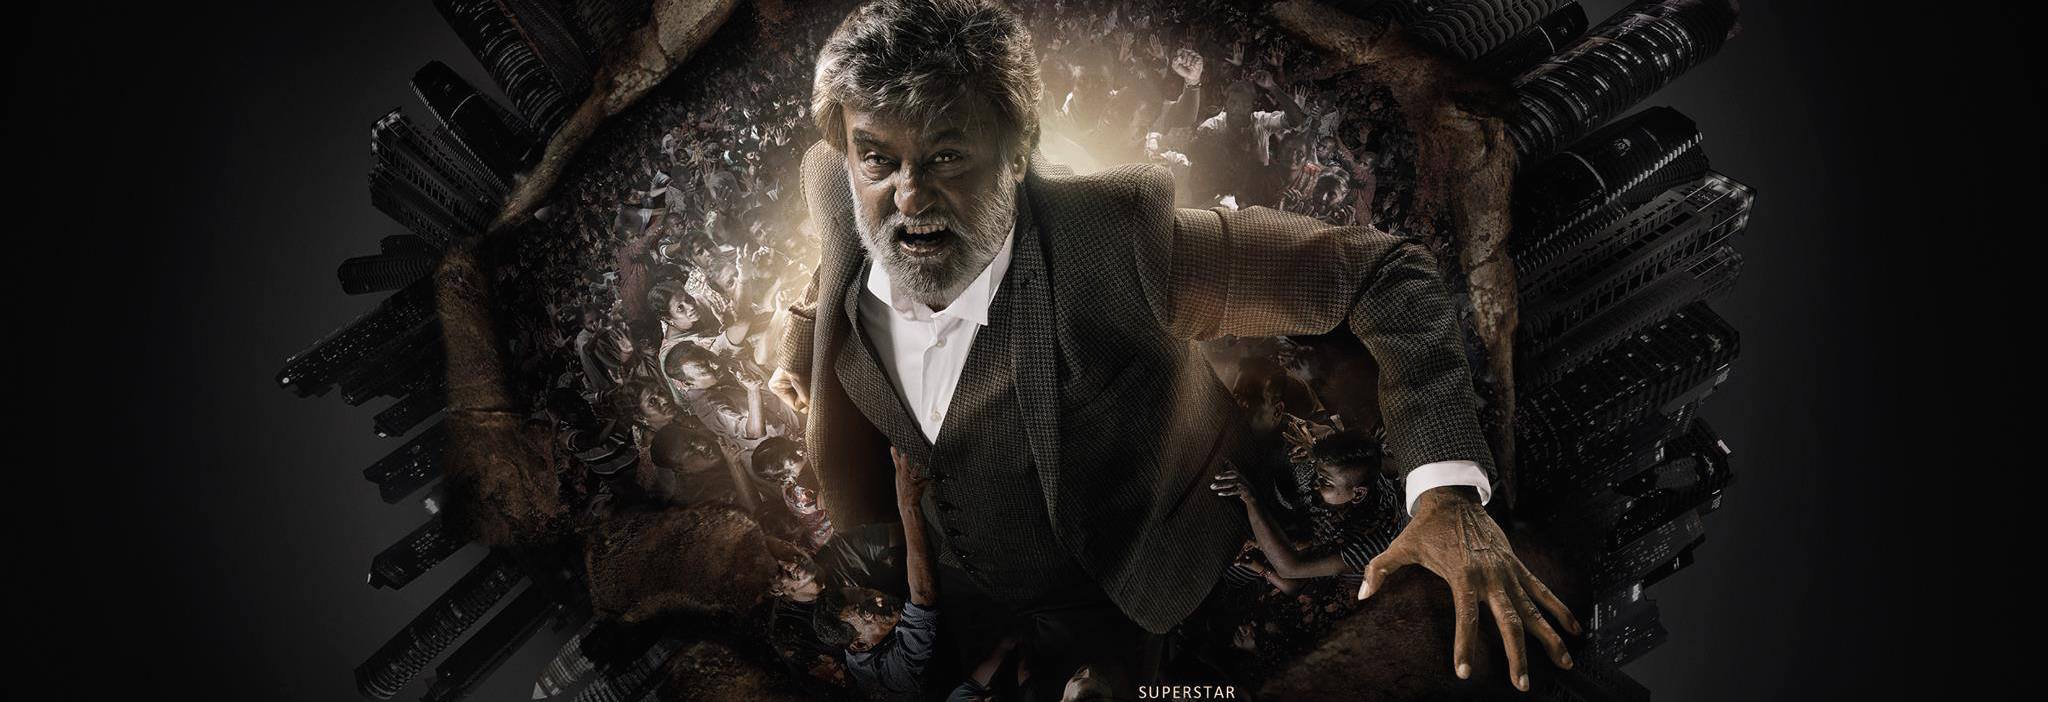 'Kabali', a Great Rajinikanth Experience if You Know What You're Looking For